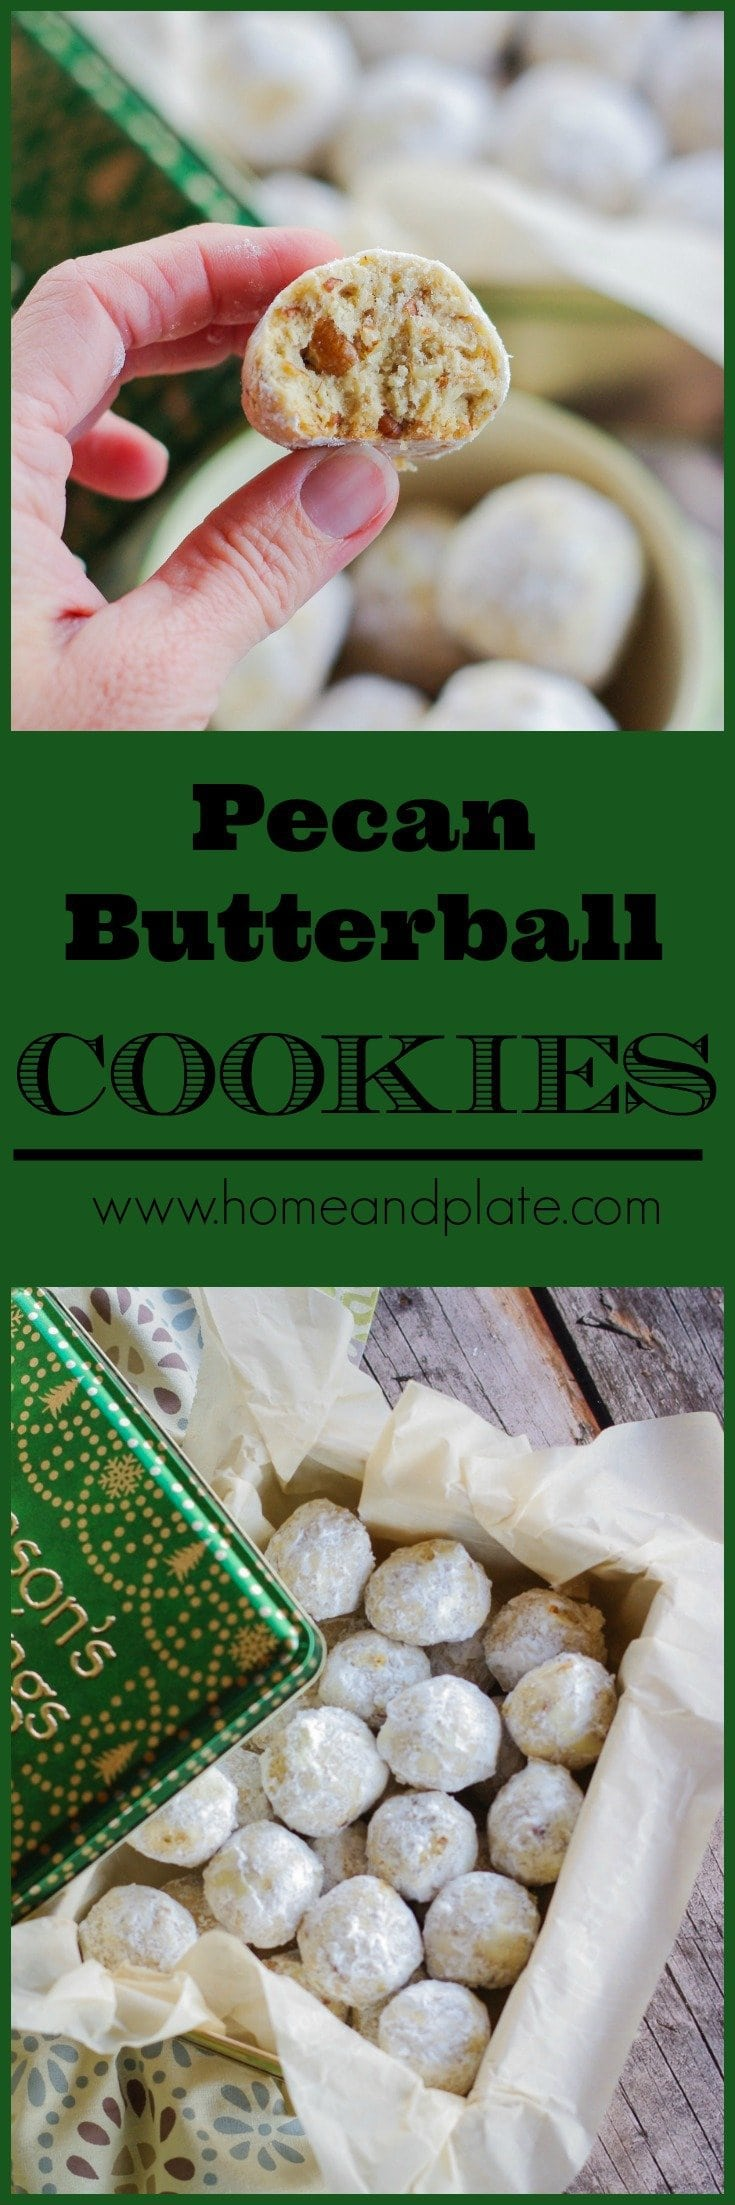 Pecan Butterball Cookies | www.homeandplate.com | These Pecan Butterball Cookies are melt in your mouth delicious. Perfect for the holidays or anytime of the year.